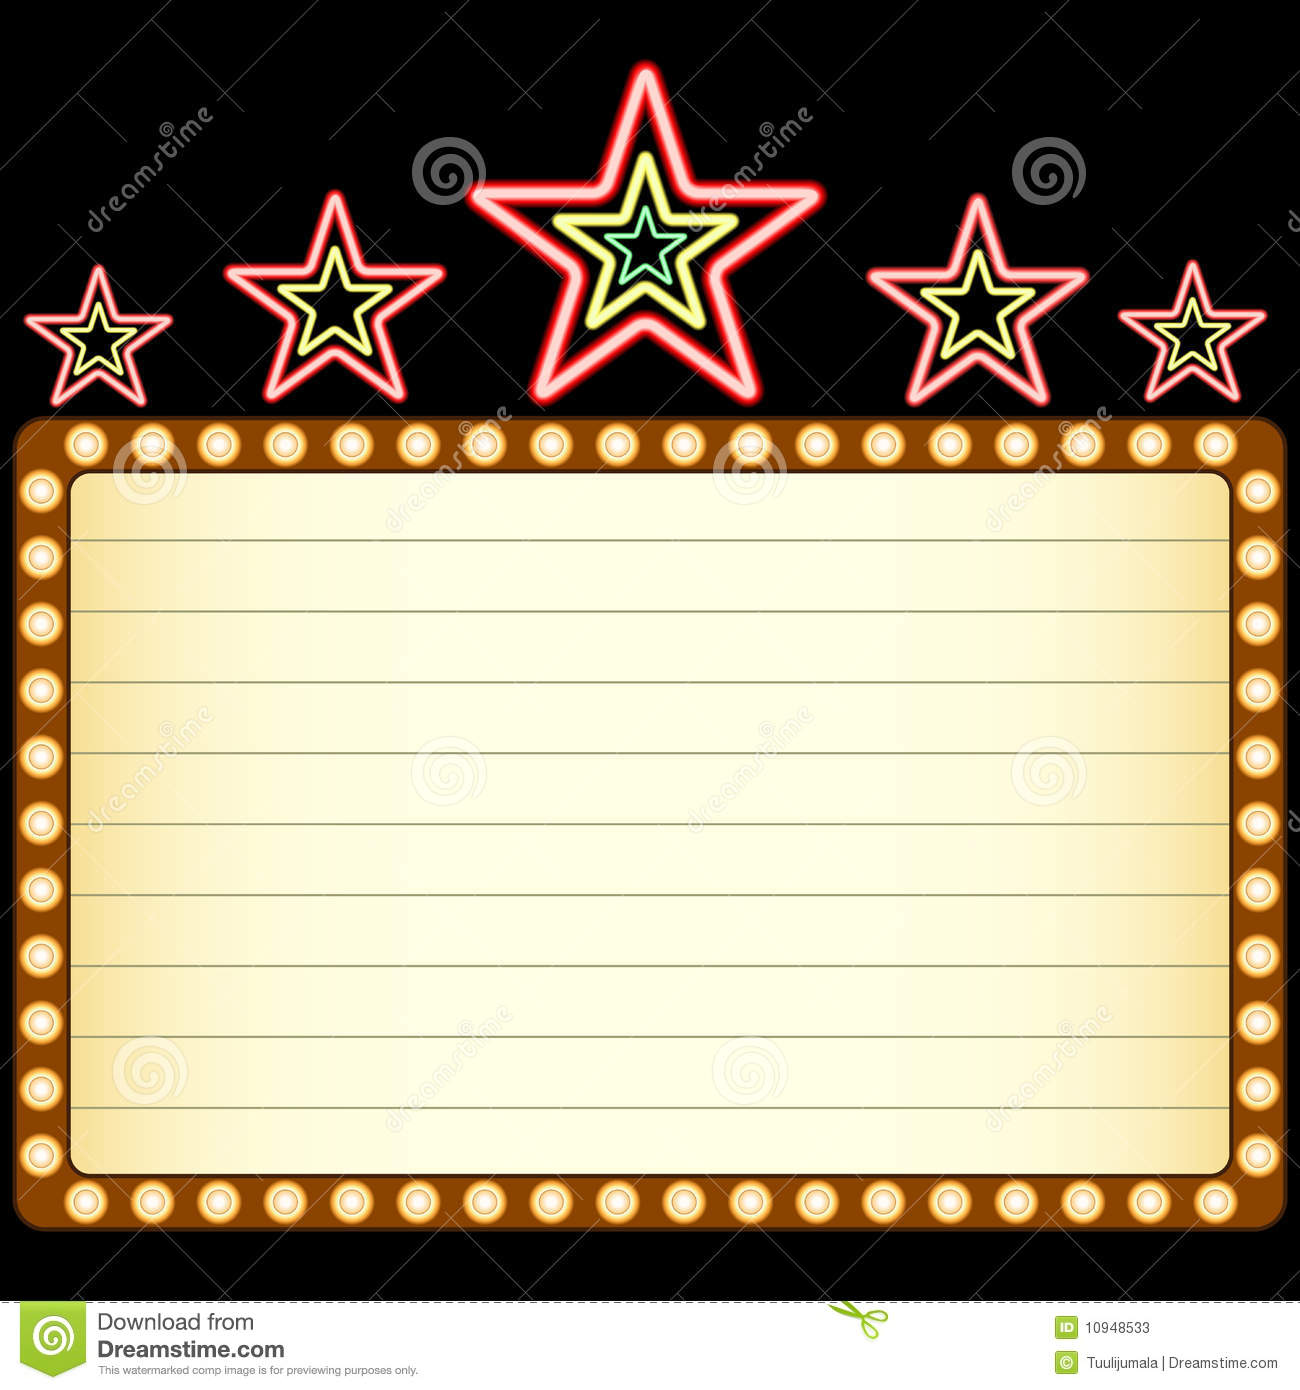 Clip Art Marquee Clipart movie marquee clipart kid blank theater or casino with neon stars above isolated